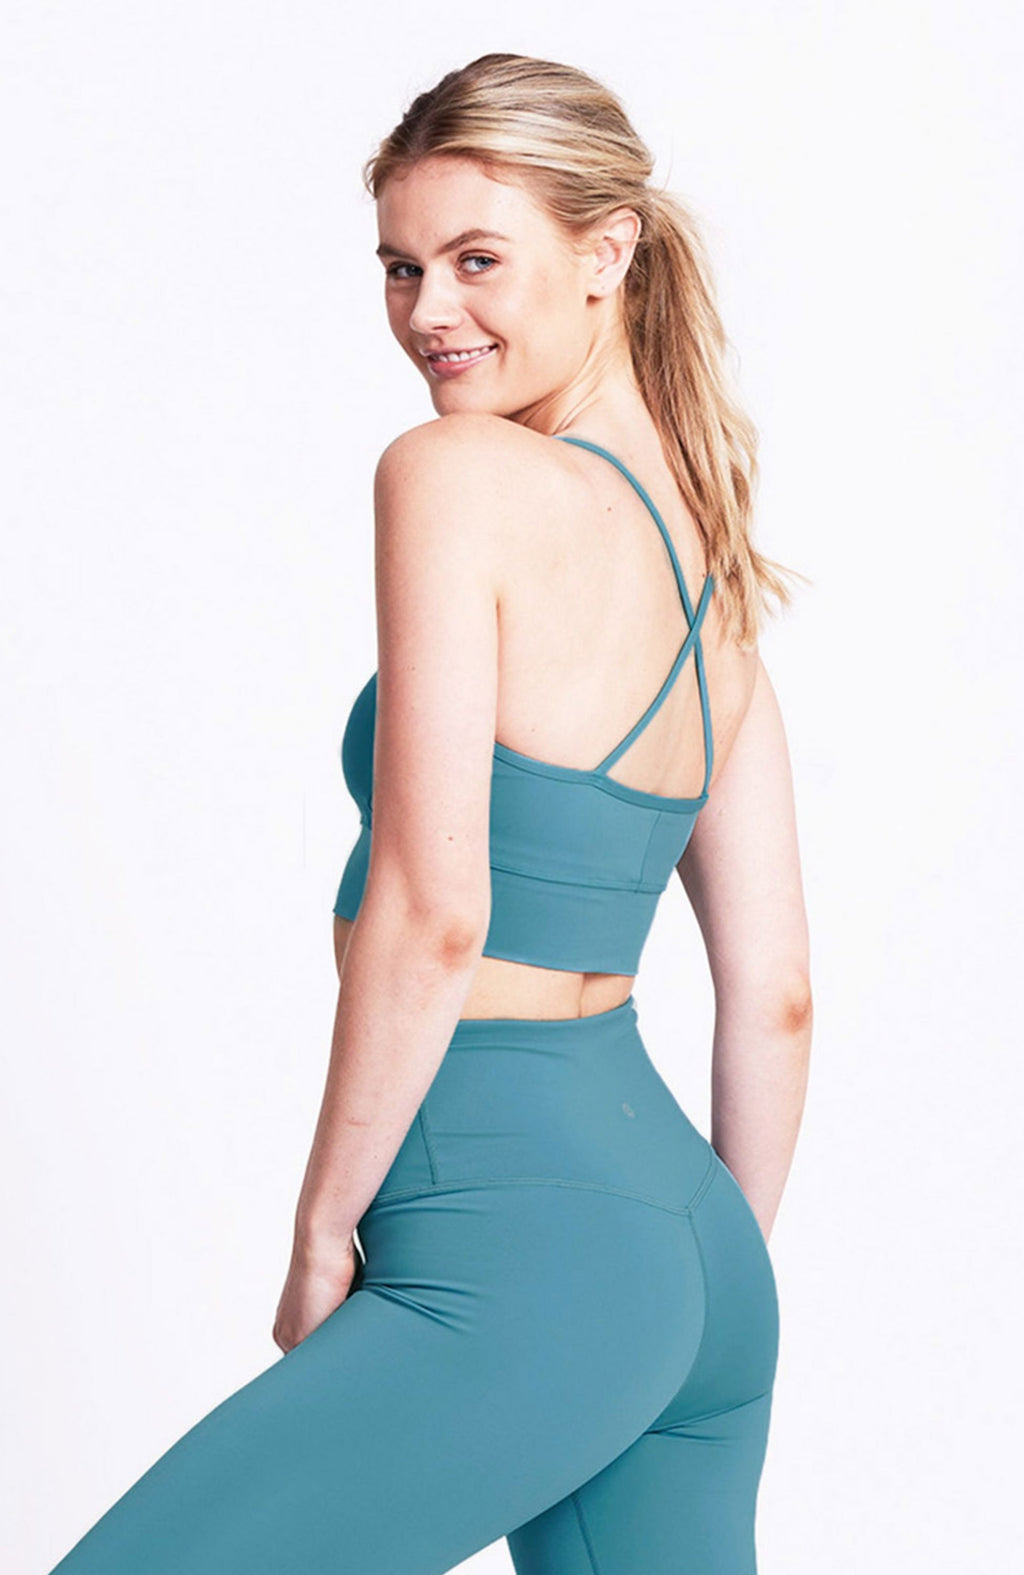 Criss-cross strap, medium impact, teal, crop sports bra. Sustainable and ethical.